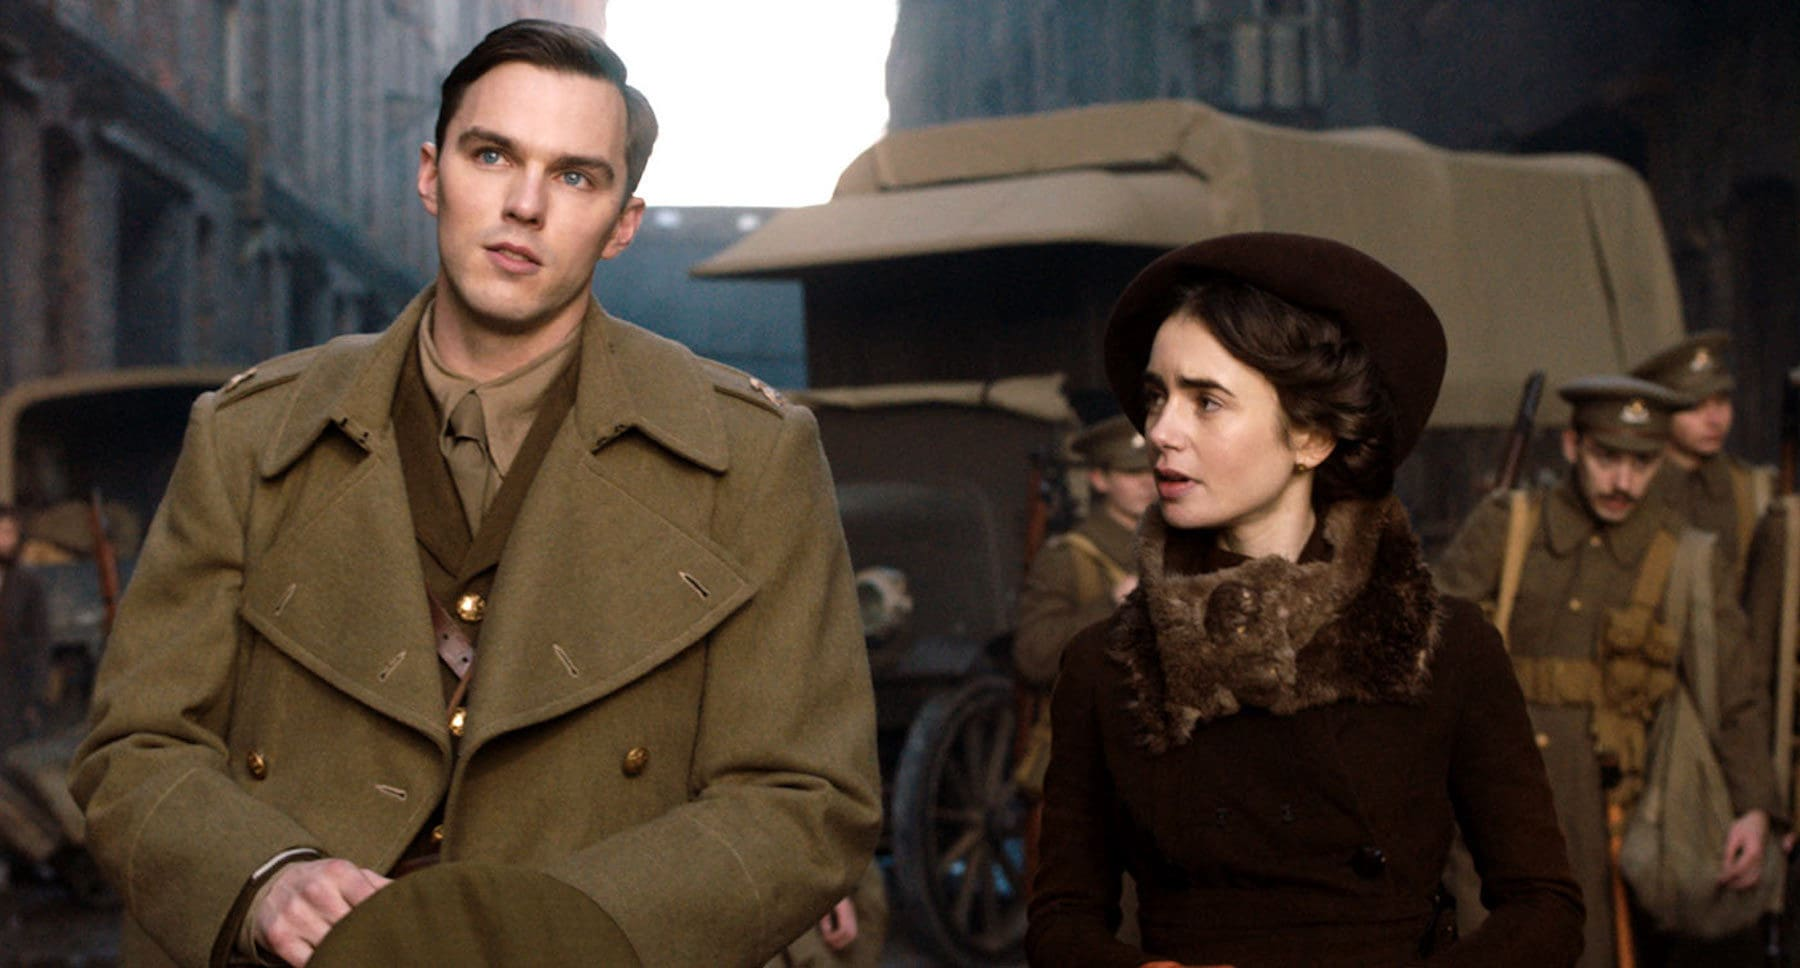 """Nicholas Hoult and Lily Collins amongst soldiers in """"Tolkien"""""""